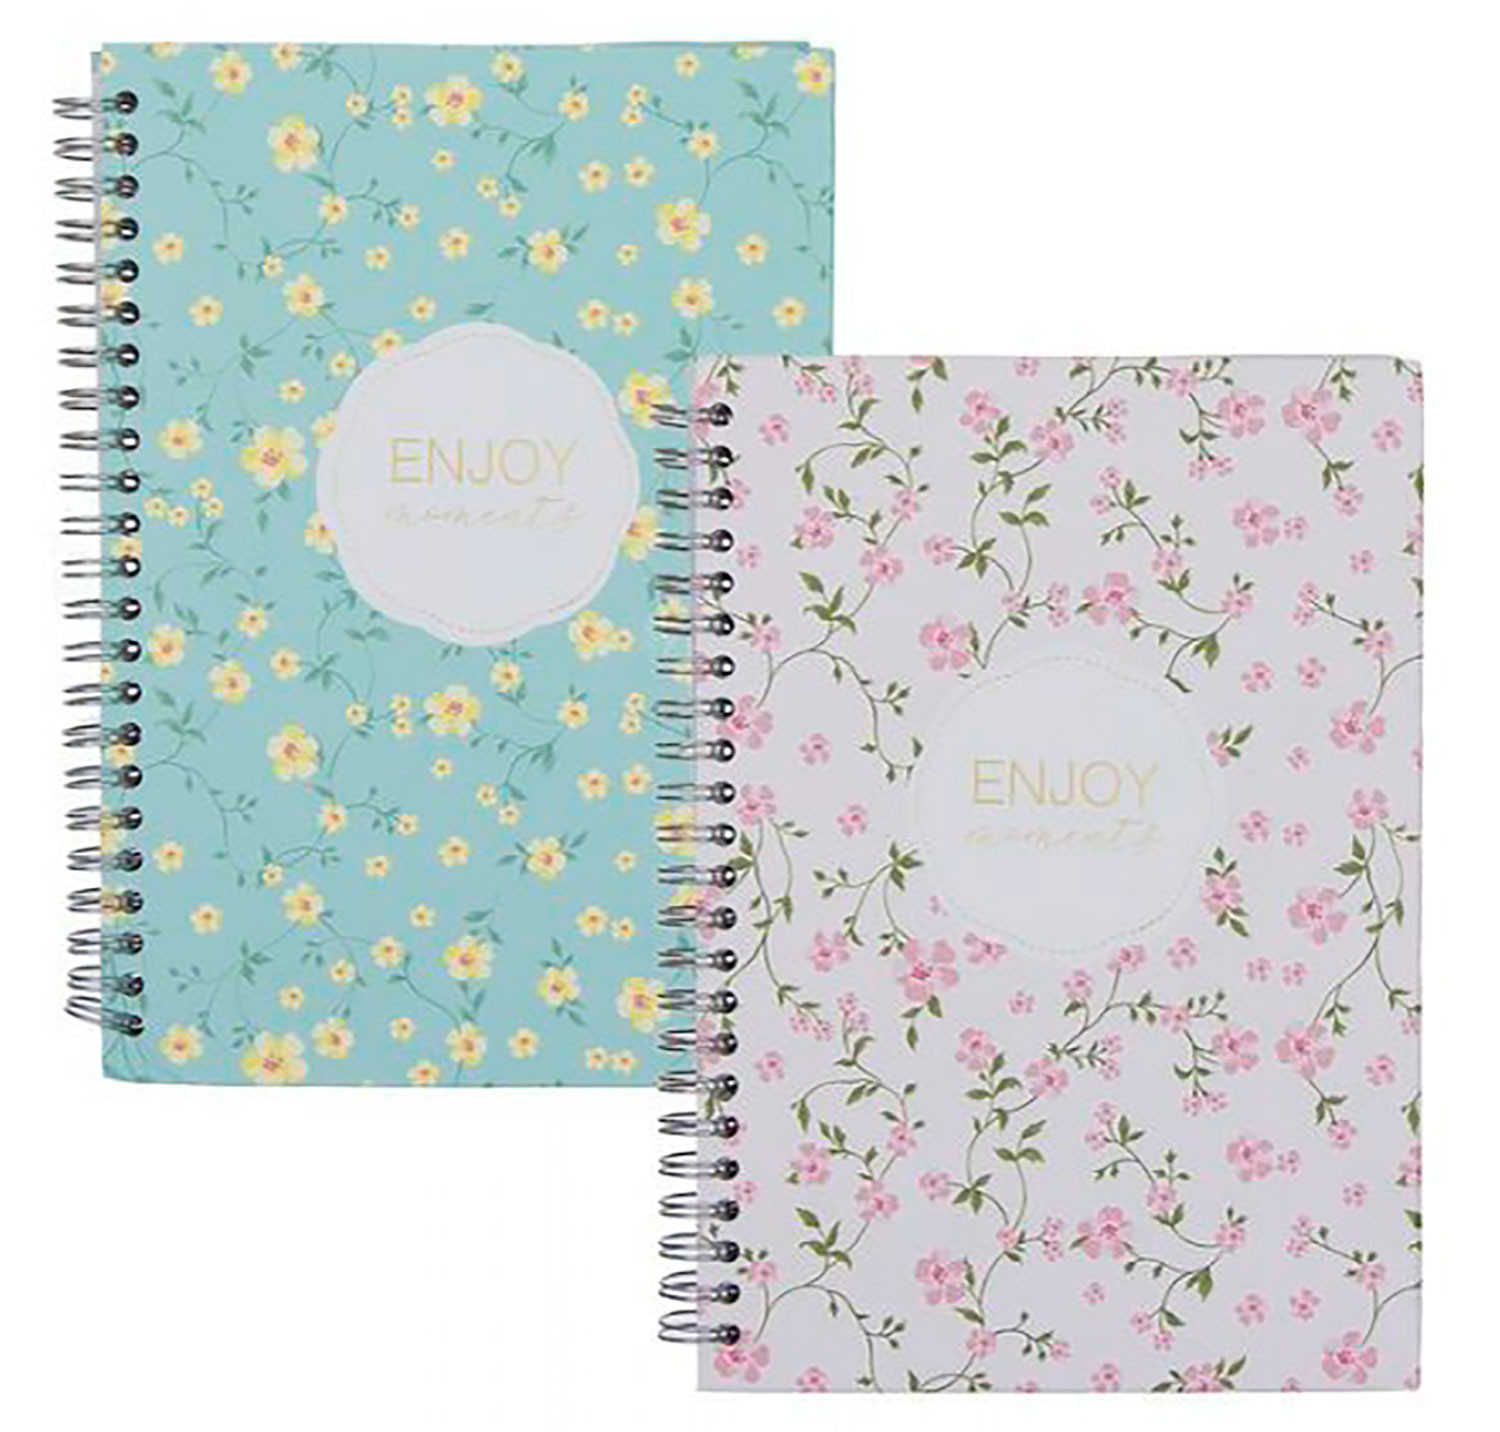 Spiral notebook Floral A5 grid, 2 different Colors with a double spiral.